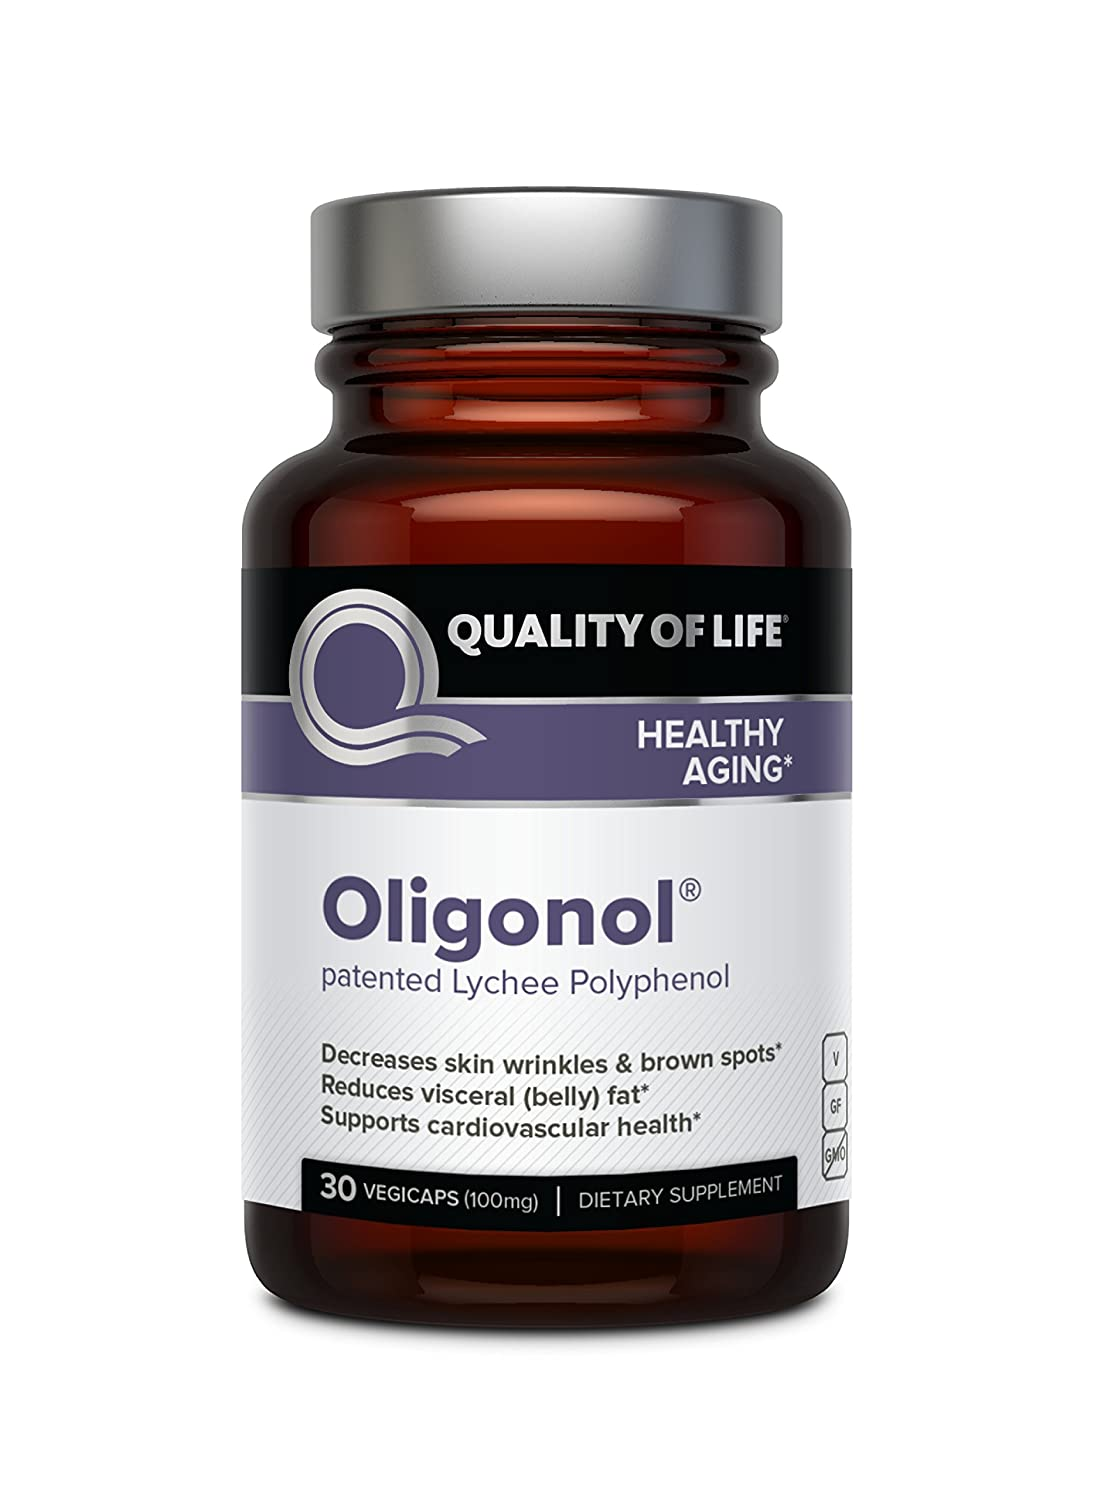 Quality of Life Oligonol Premium Anti Aging Supplement-Supports Cardiovascular Health Youthful Skin, Circulation, Weight Loss, 30 Vegicaps 100mg